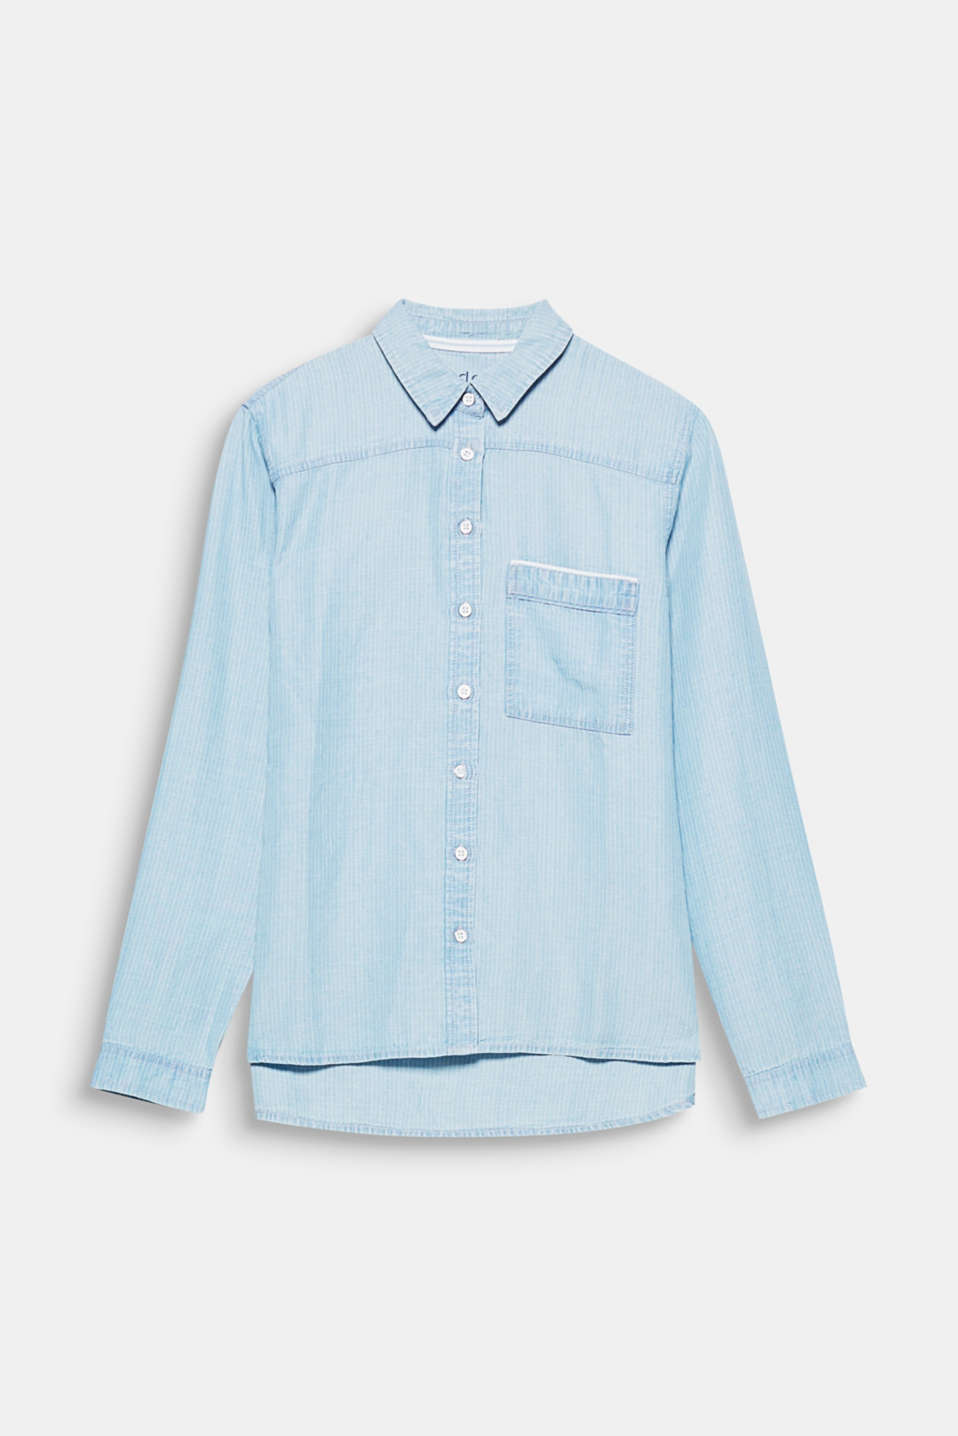 The subtle, striped denim effect and the loose shape make this blouse a must-have piece for spring.